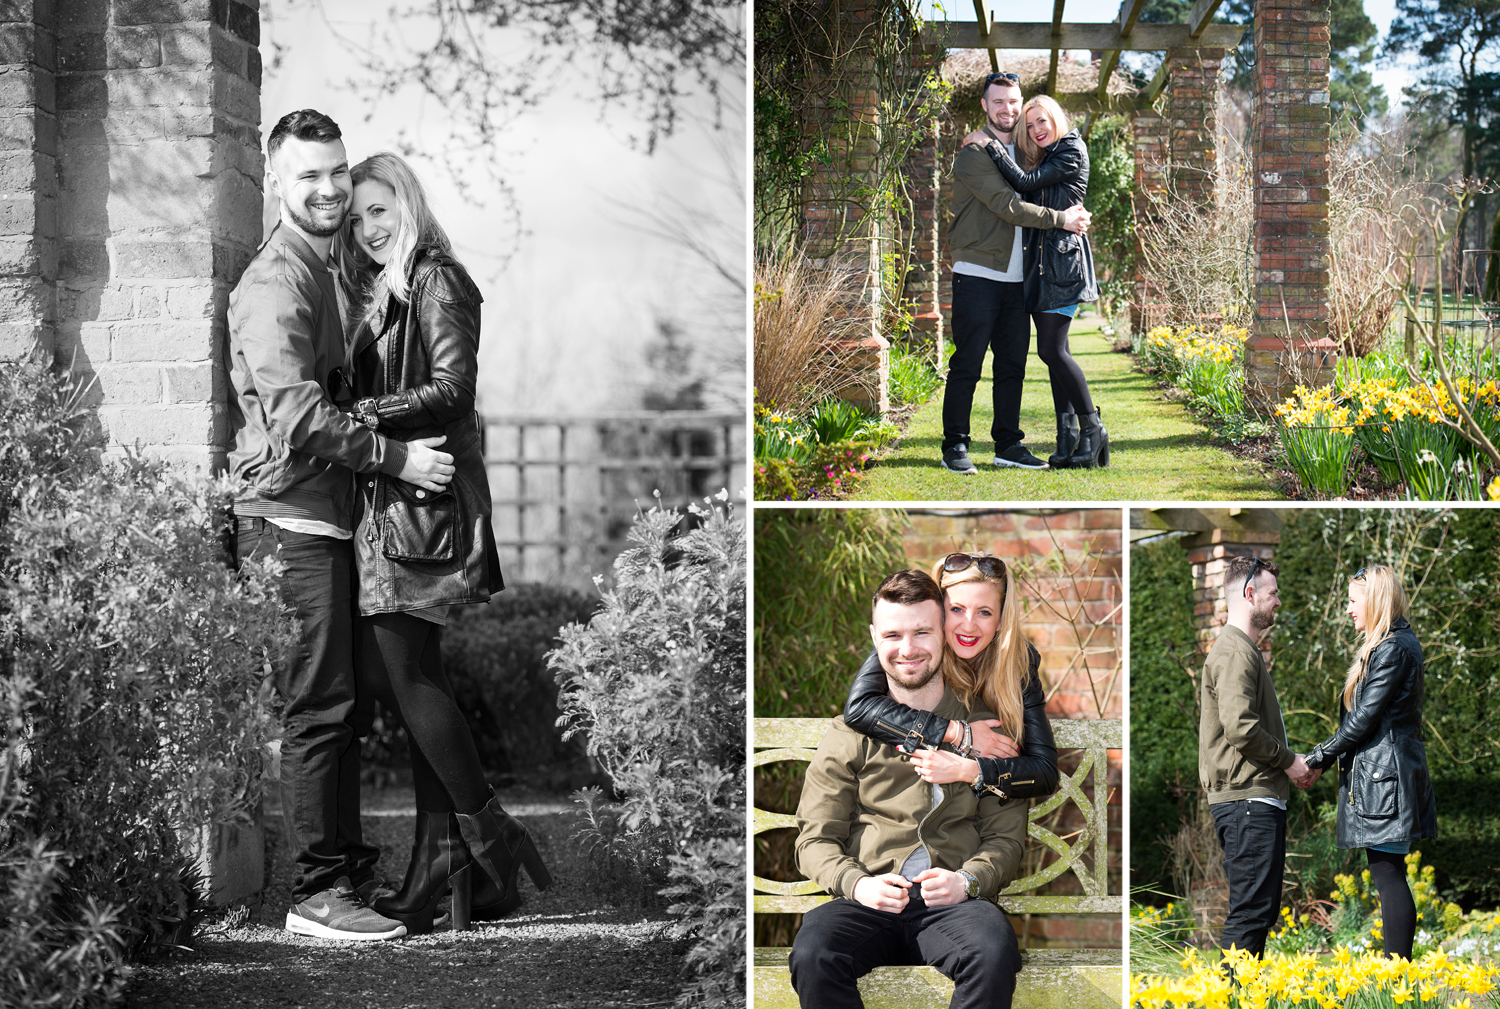 The Abbey wood Estate gardens provide a fantastic backdrop for engagement and wedding photography.